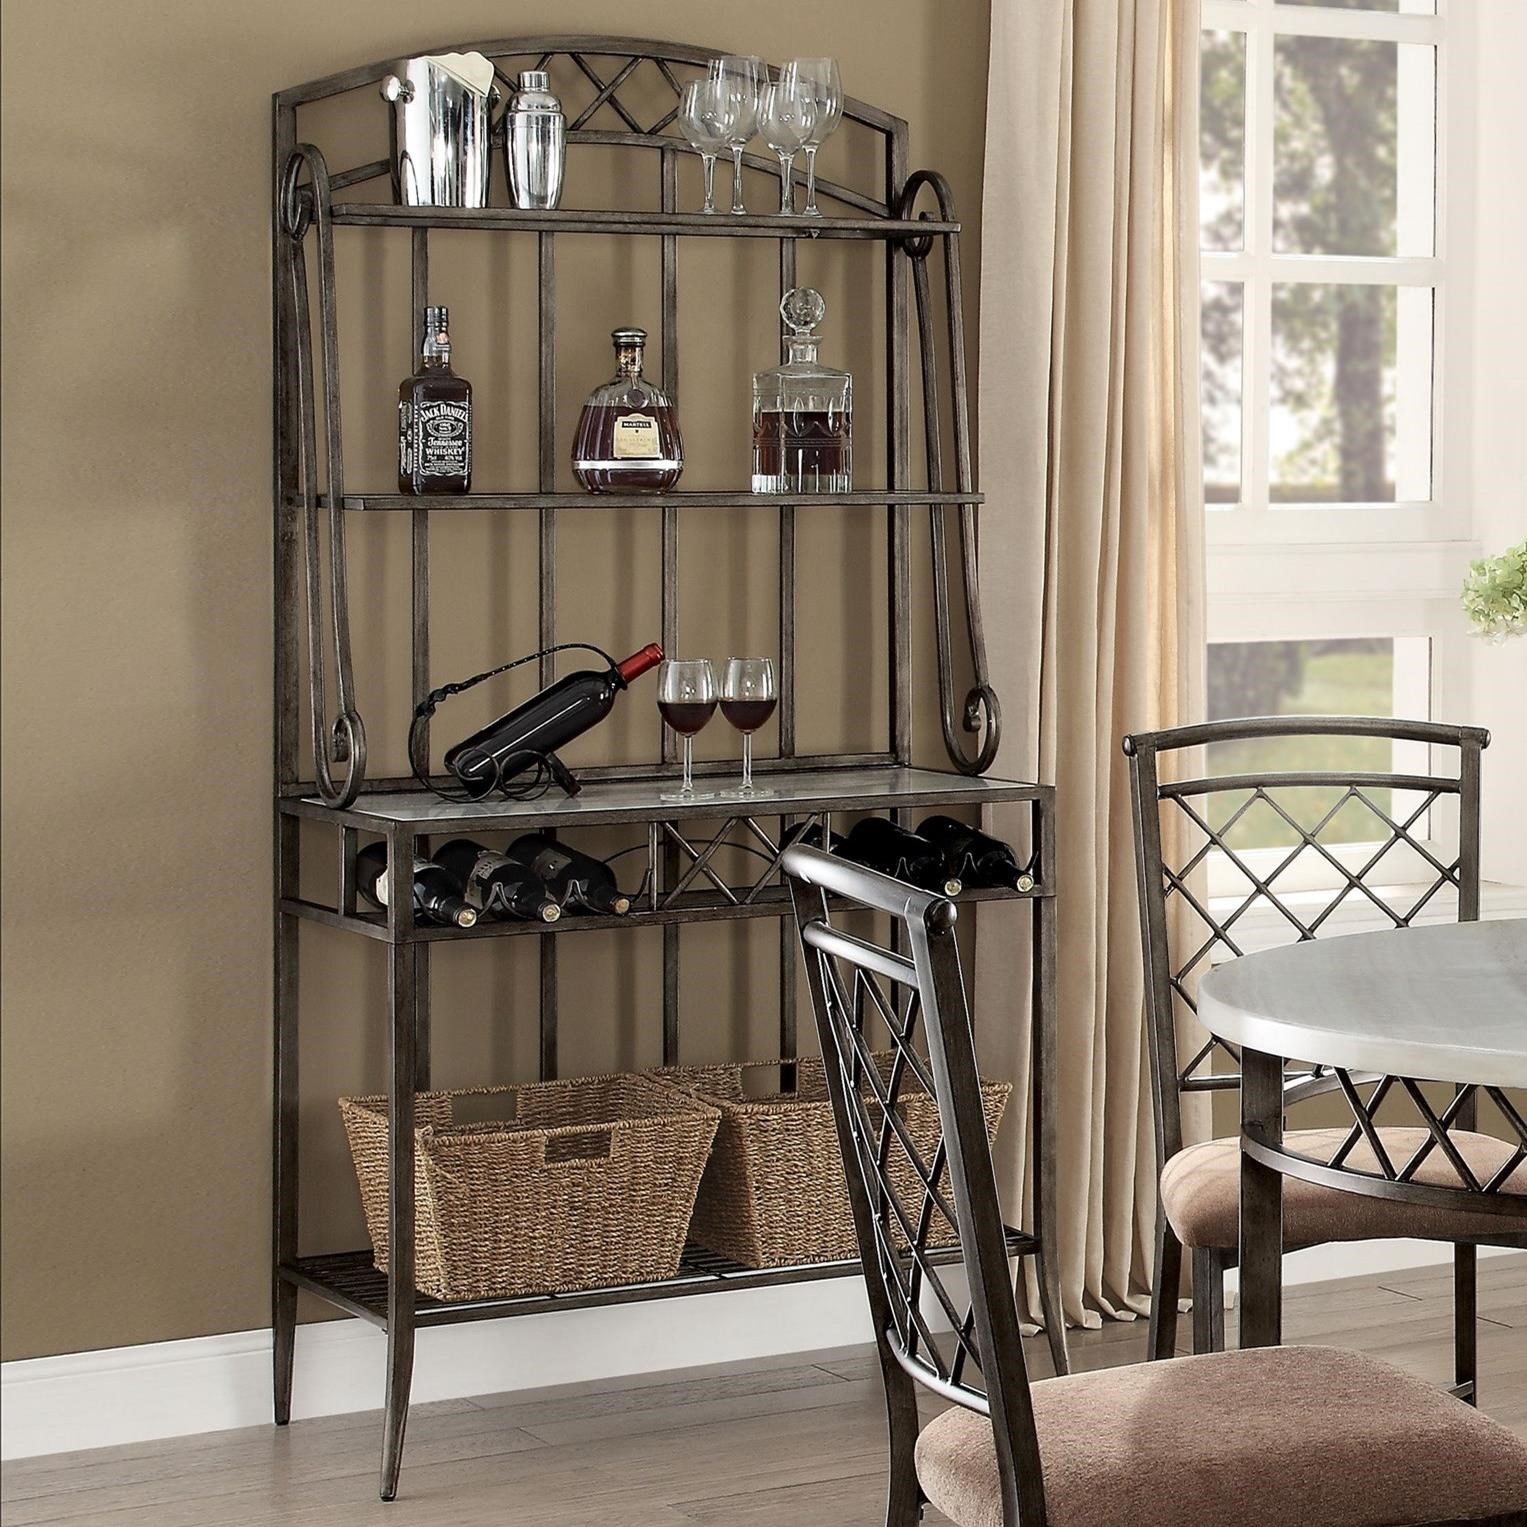 Aldric Baker's Rack by Acme Furniture at Carolina Direct